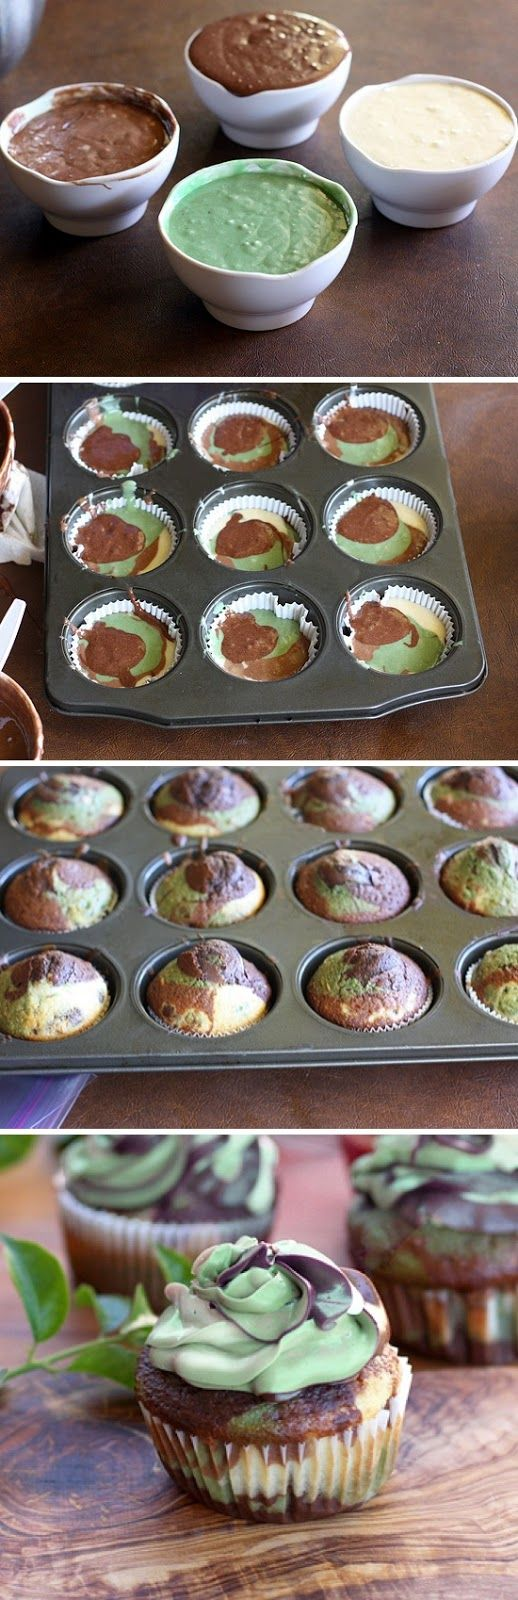 Camouflage Cupcakes Yummmy